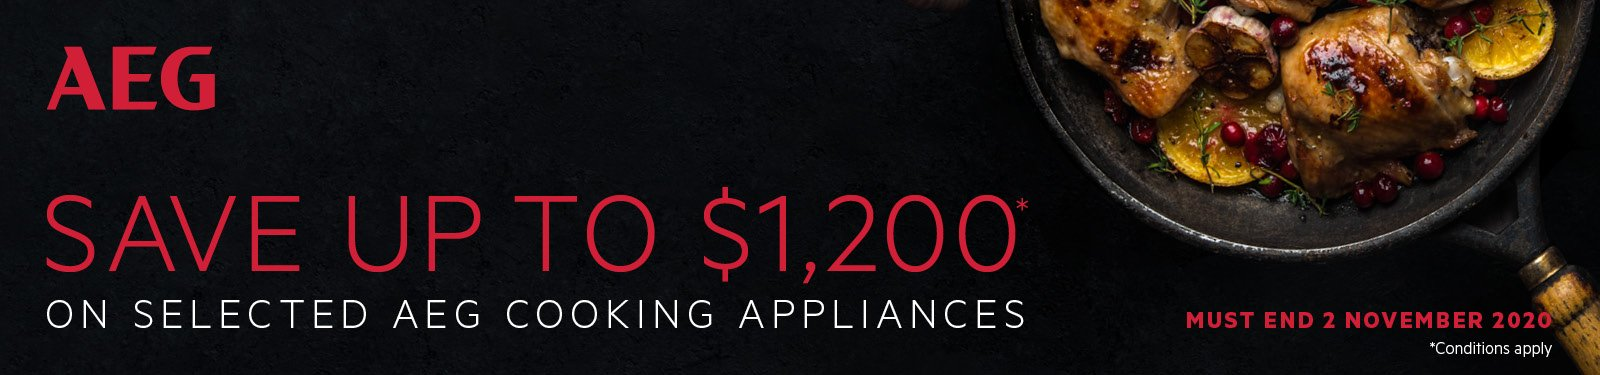 Save Up To $1200 On Selected AEG Cooking Appliances